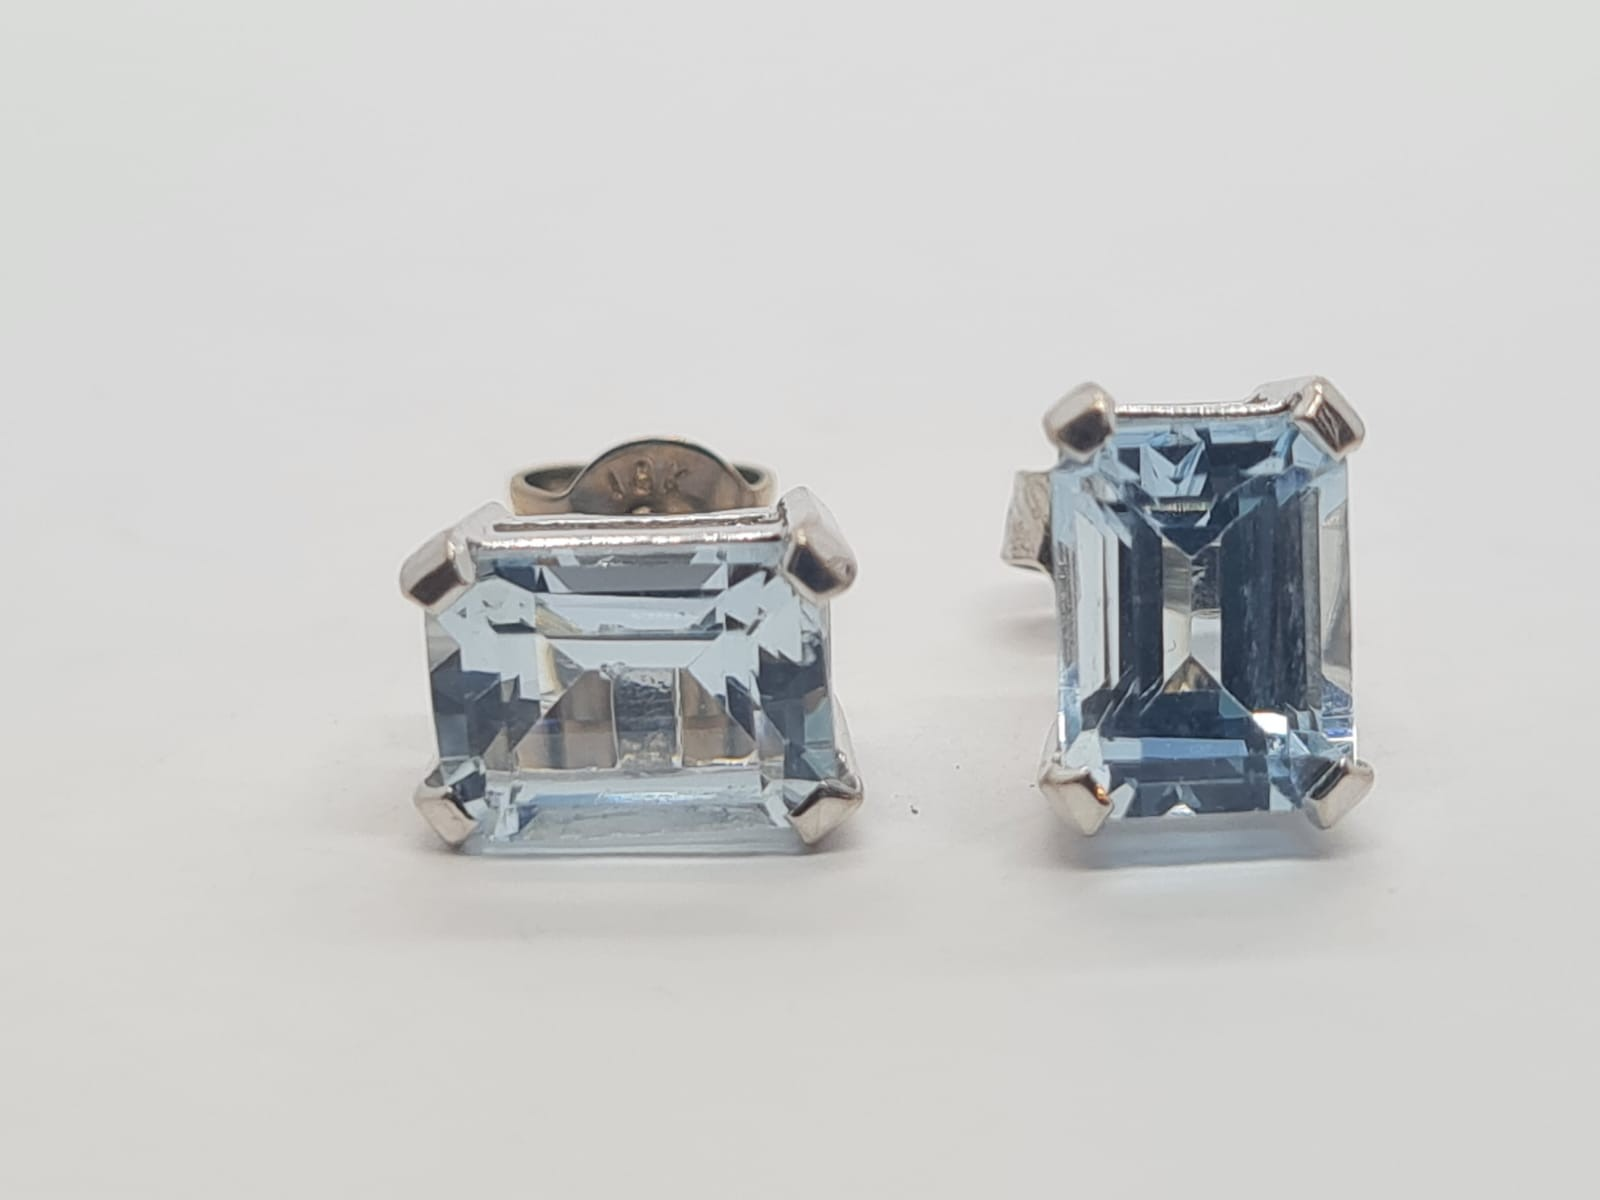 Pair of aquamarine stud earrings set in 18k white gold, weight 3.3g - Image 2 of 4